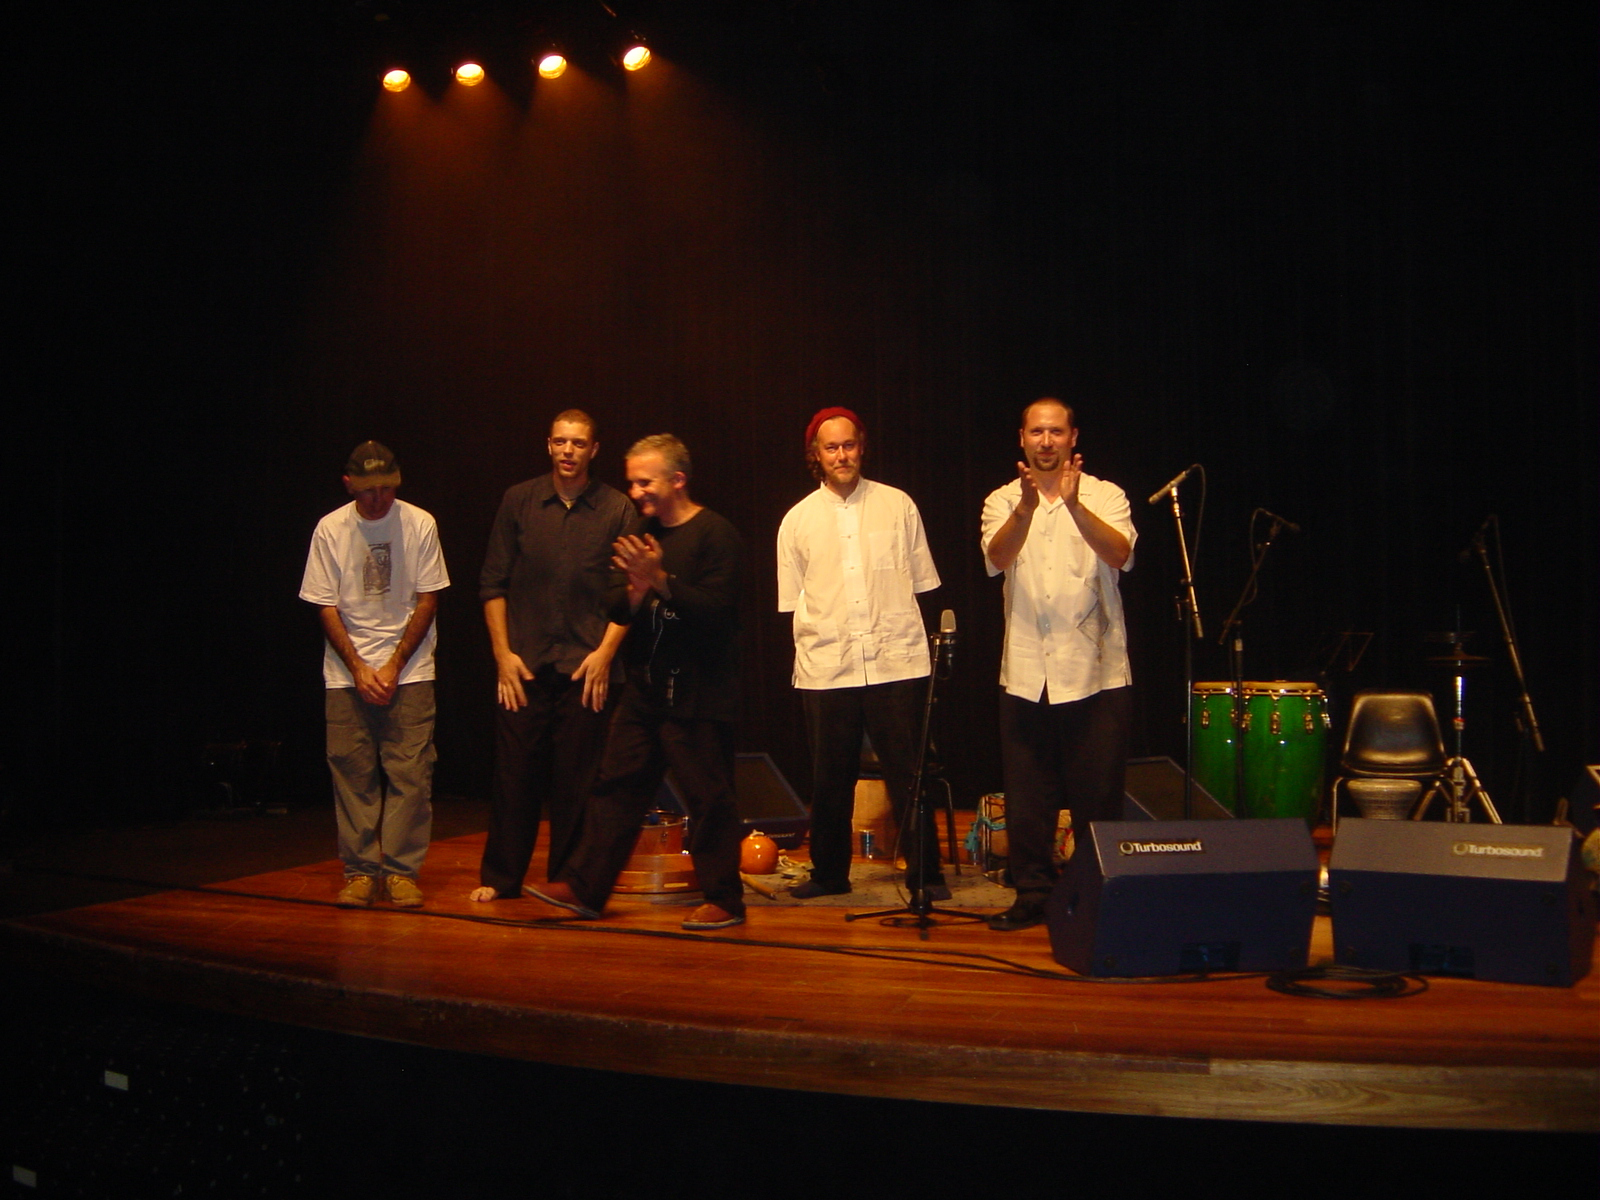 Hands On'Sembleand Duo Ello (Carlos Stasi and Guello) in Concert at SESC Santo Andre, Sao Paulo August 13th, 2003.